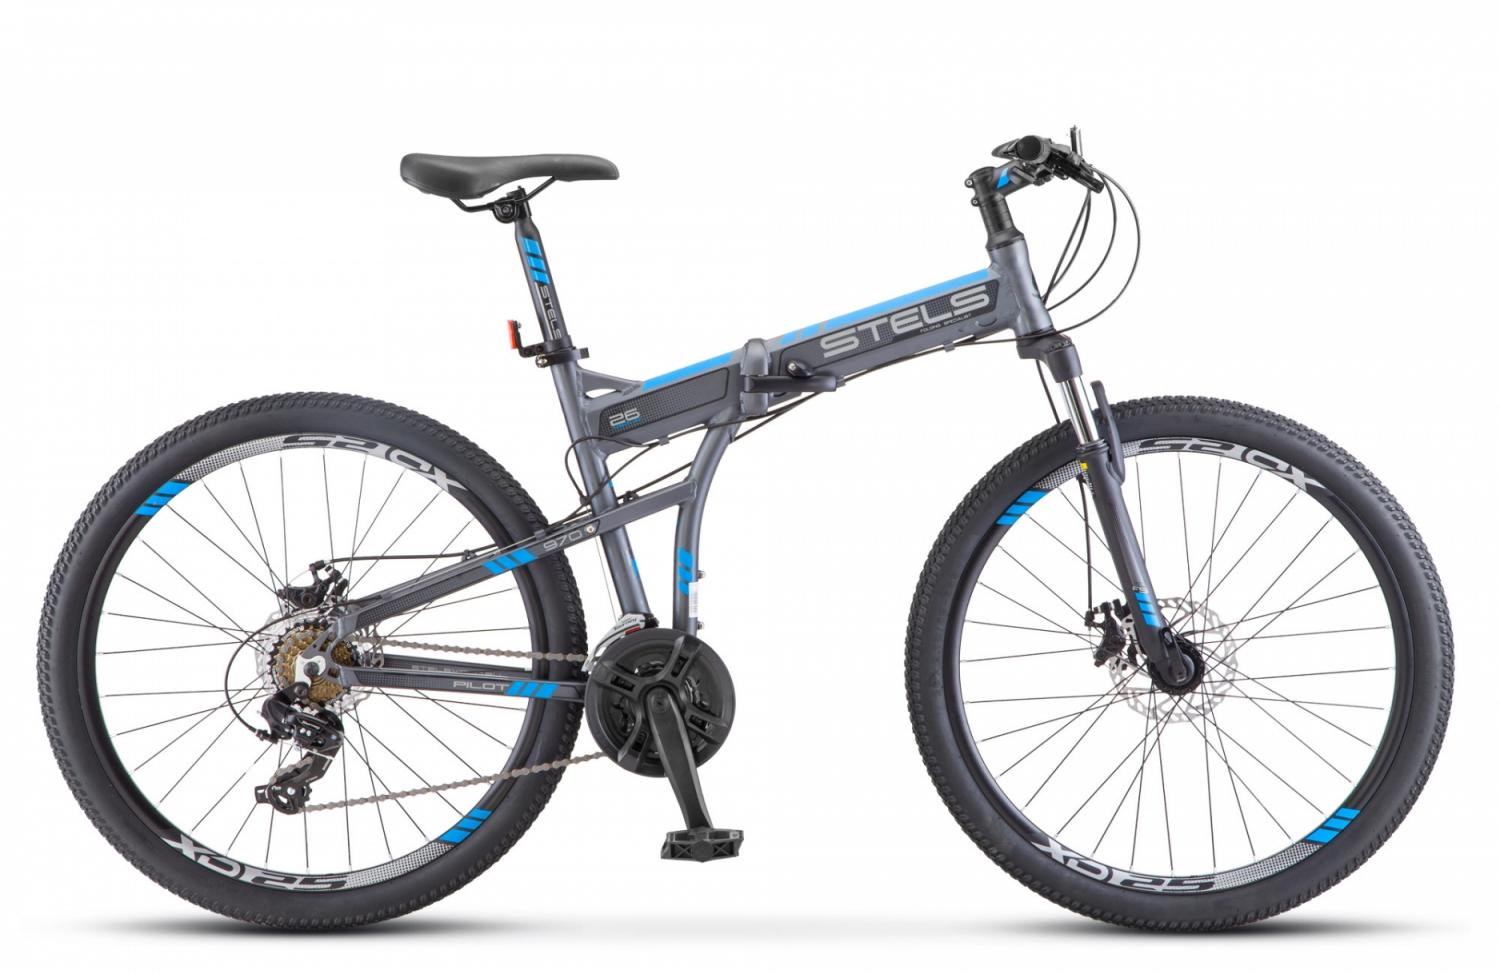 stels pilot 970 md 26 модель 2018 года в разложенном виде изображение сайта www.TopBicycle.ru